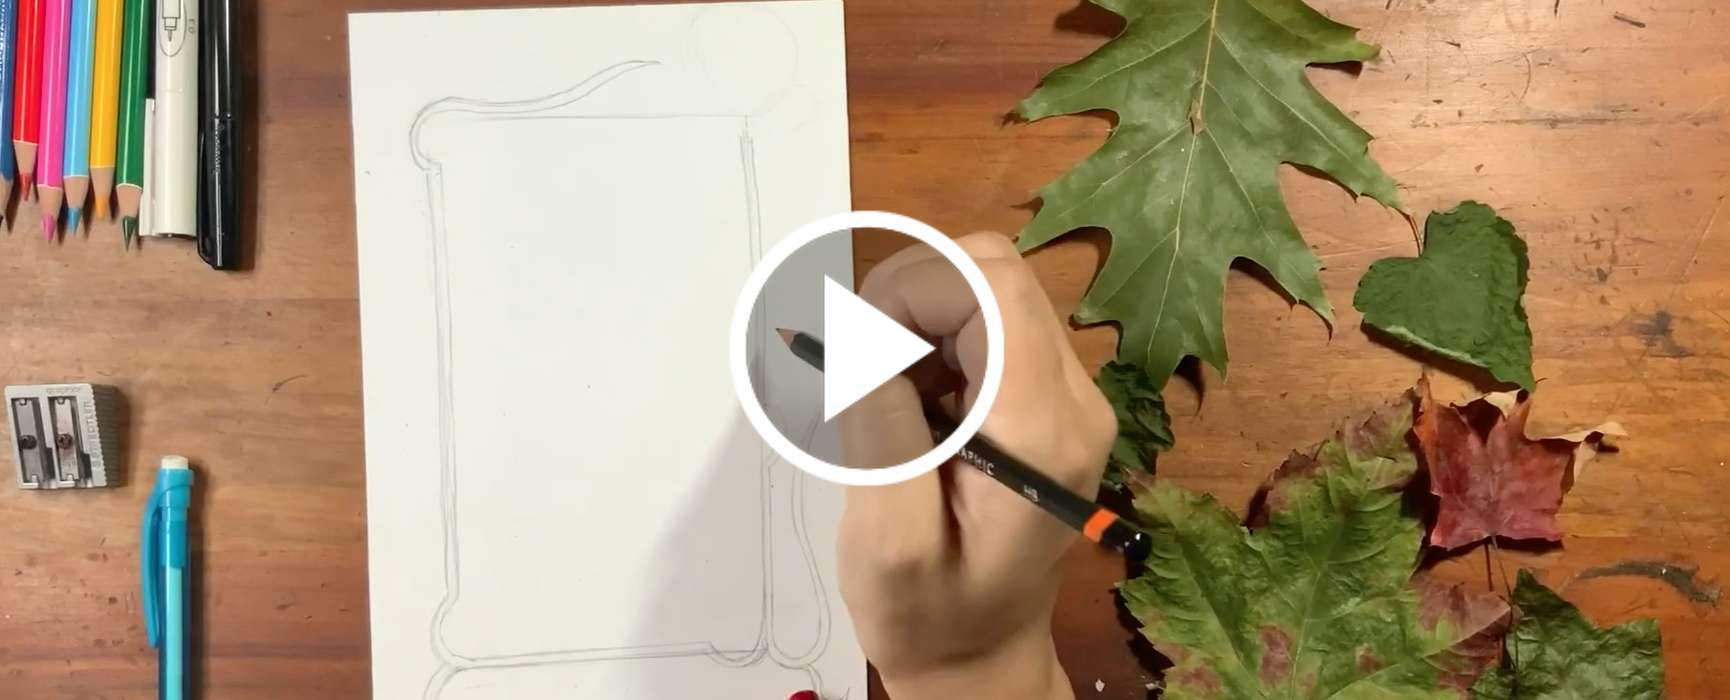 Video still: Colored pencils, paper, leaves and a hand holding pencil ready to draw.